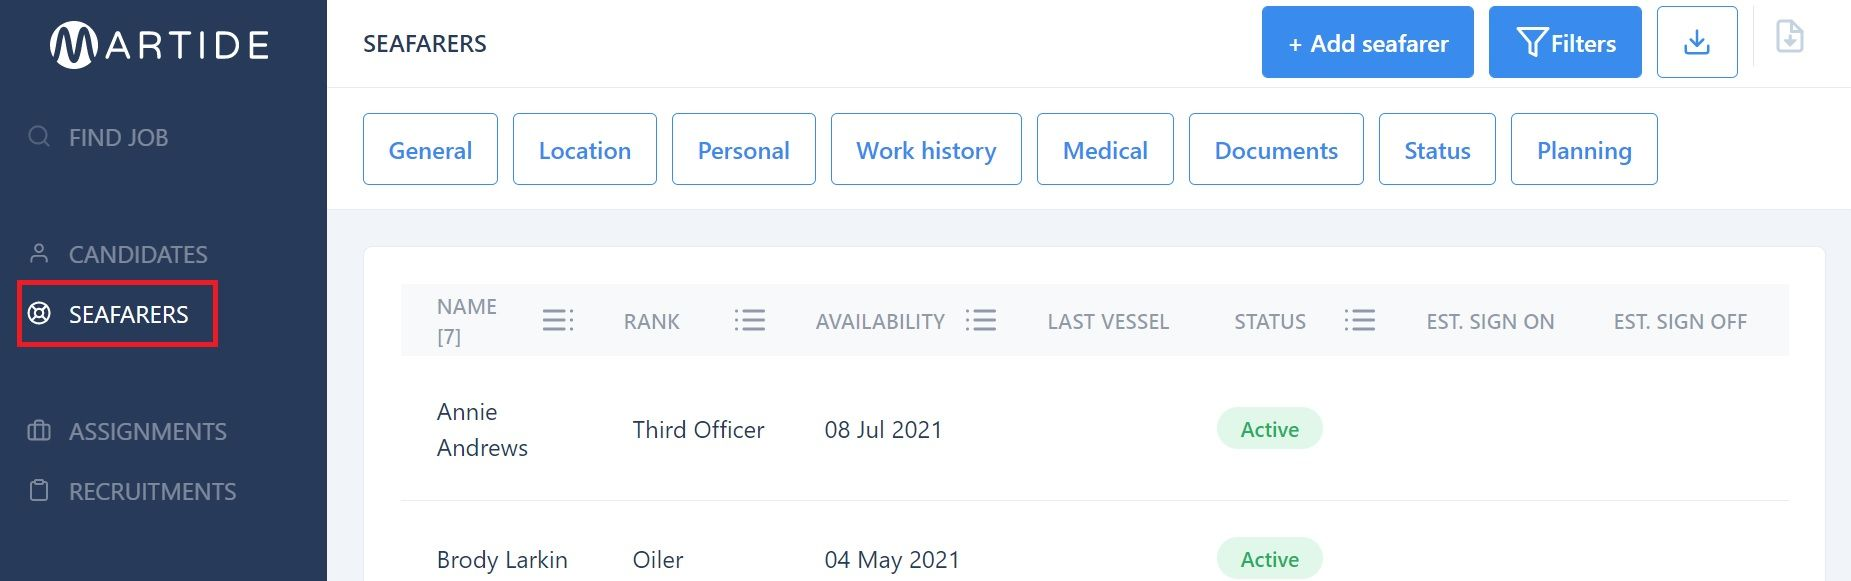 screenshot of Martide website showing the menu and seafarers page